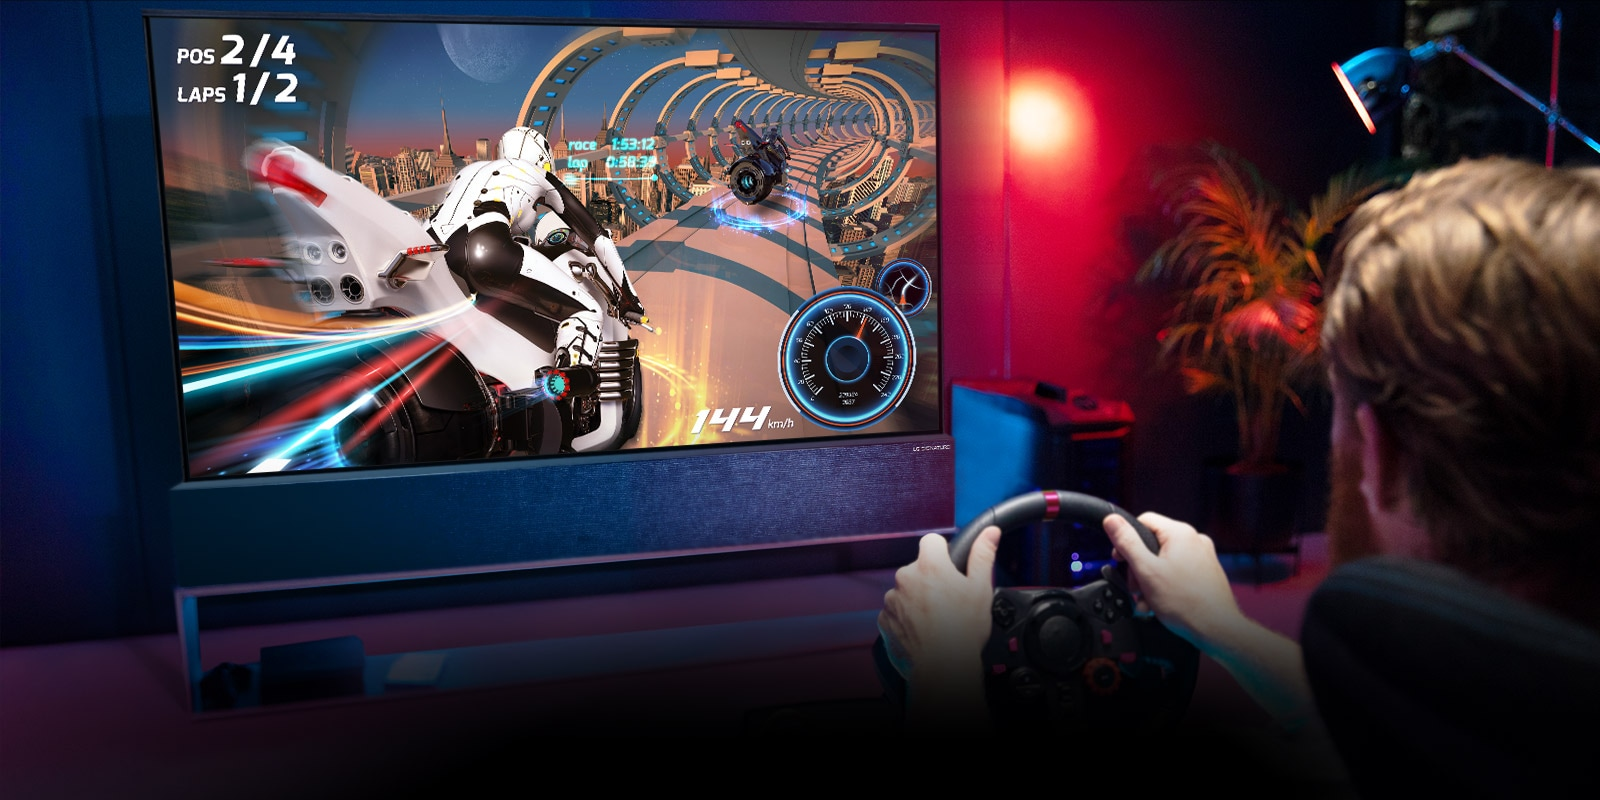 Man sitting on a racer gaming chair, holding a racing wheel while playing a racing game on the LG SIGNATURE rollable OLED TV screen.